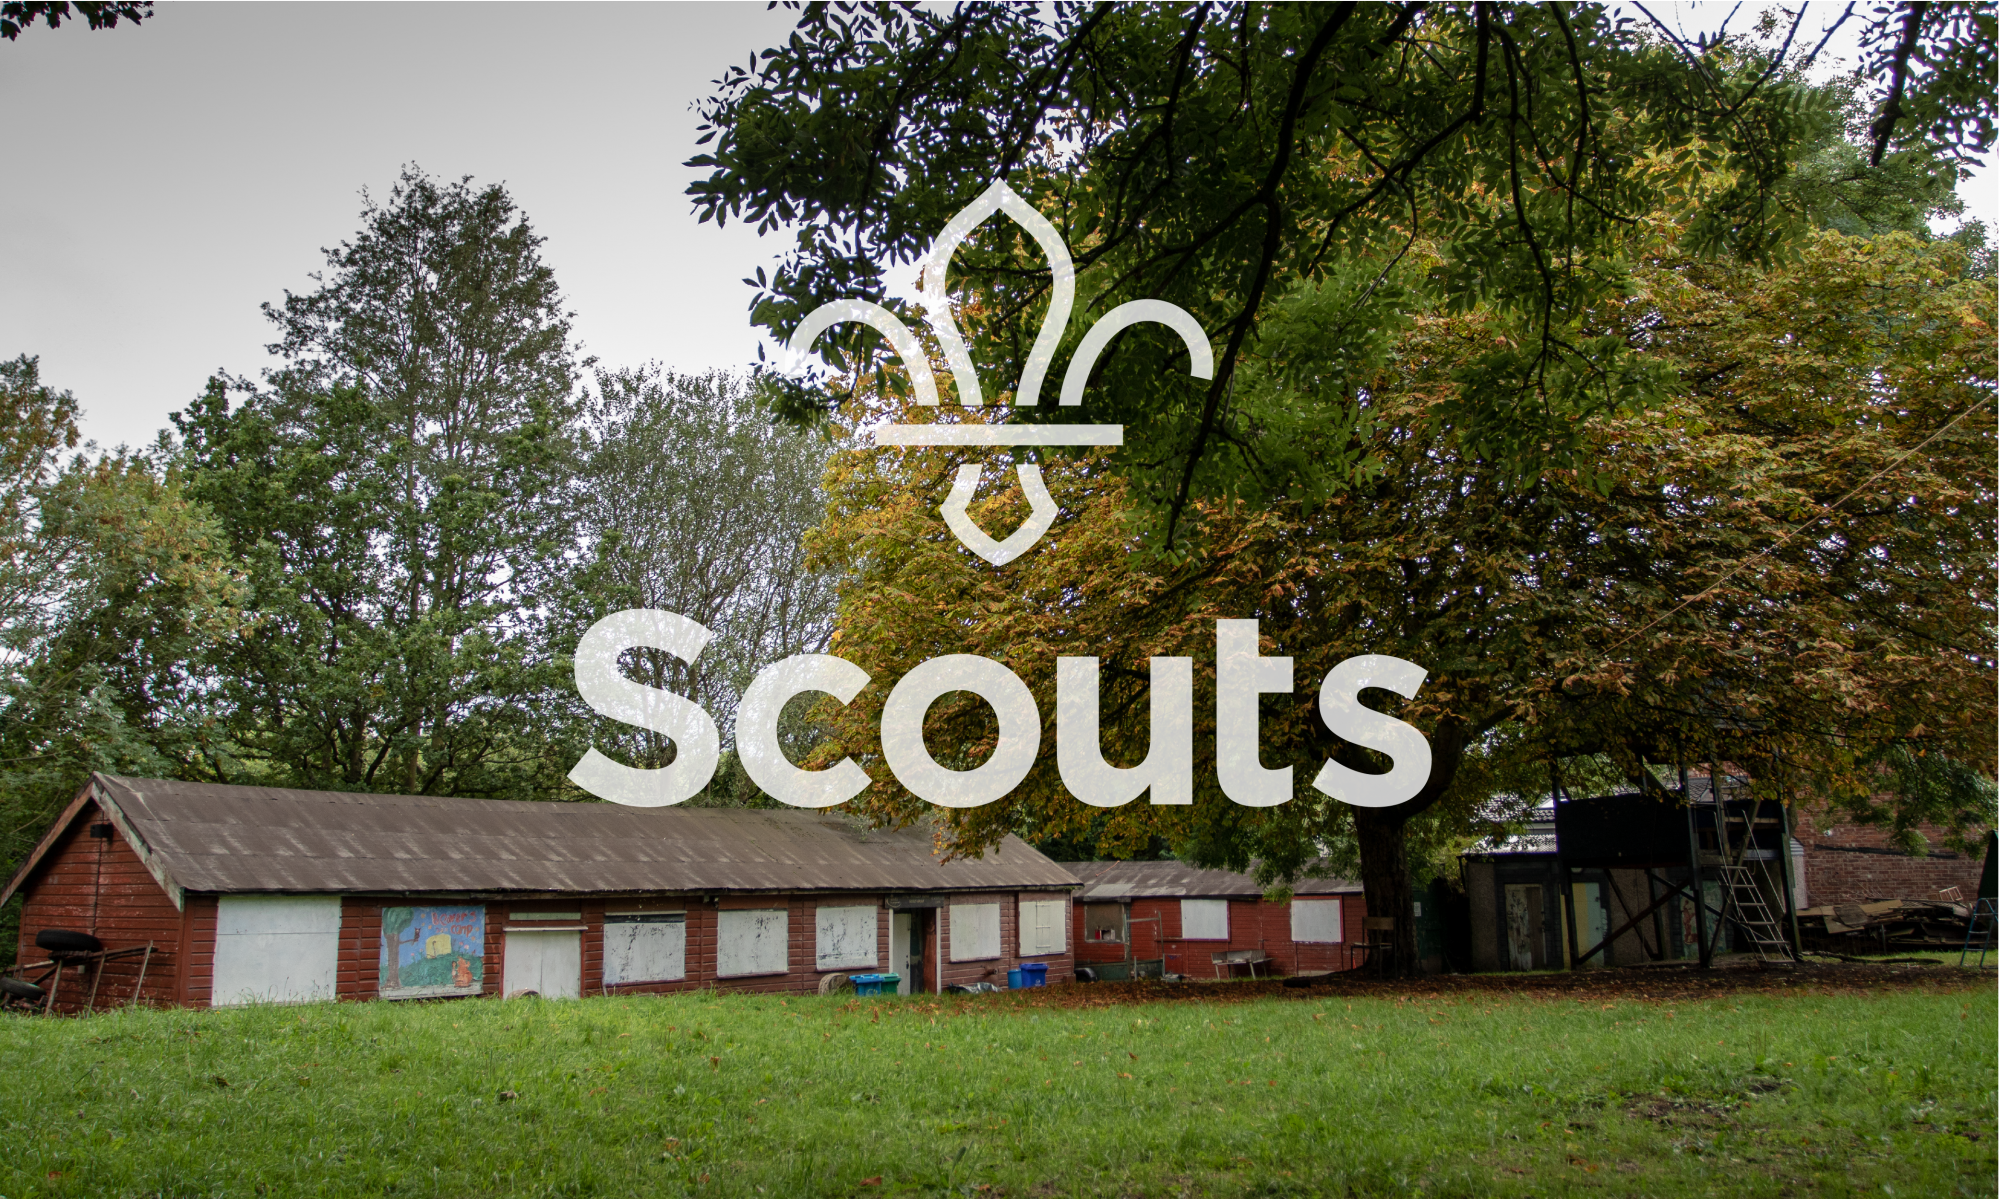 2/77th Manchester Scouts Group